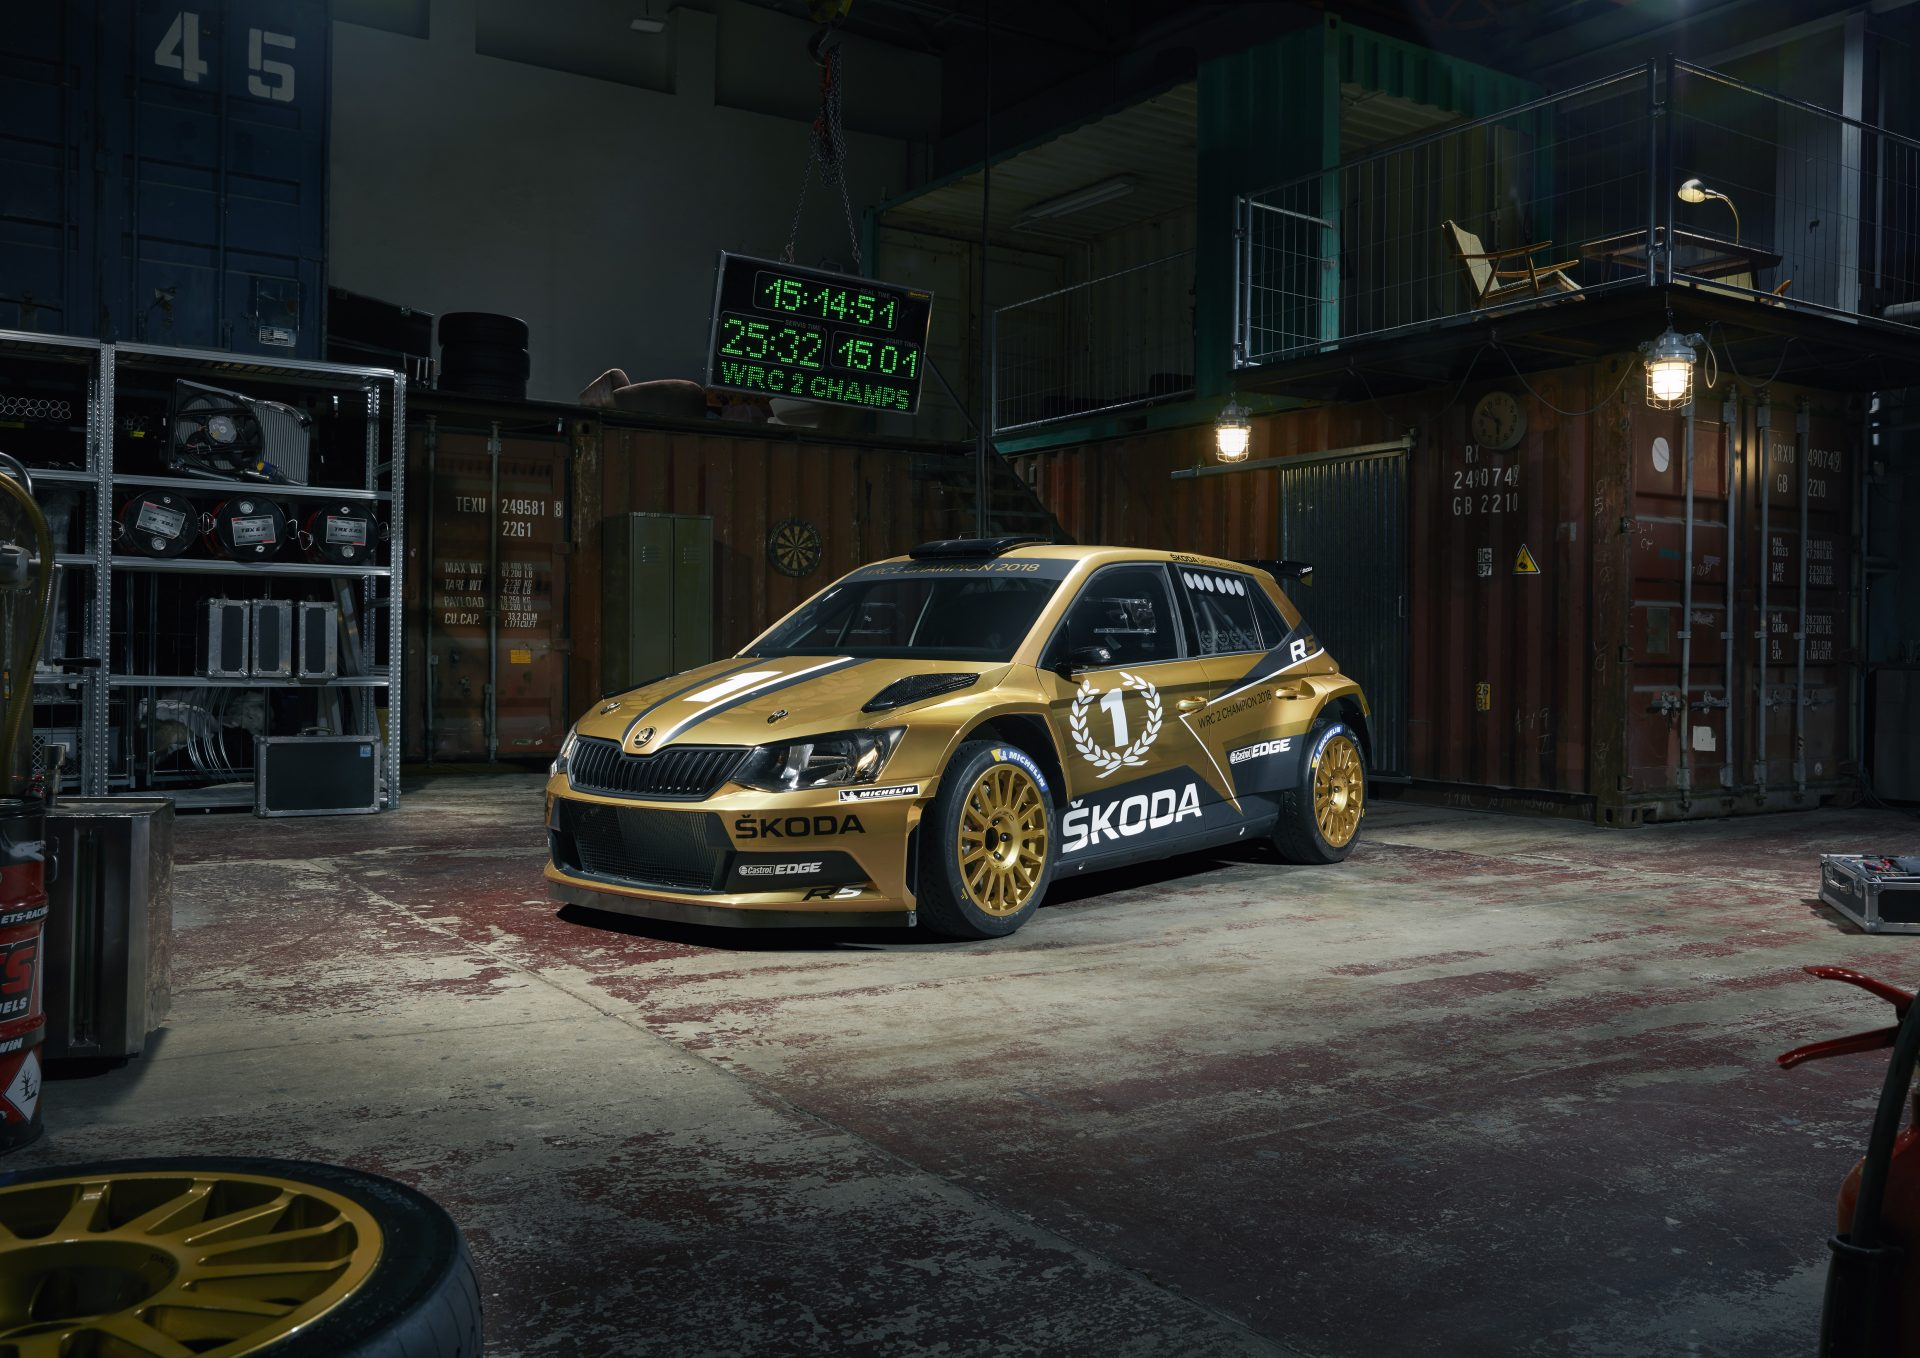 These Are the Three Best Photos of ŠKODA Rally Cars by You | Golden Photo Contest